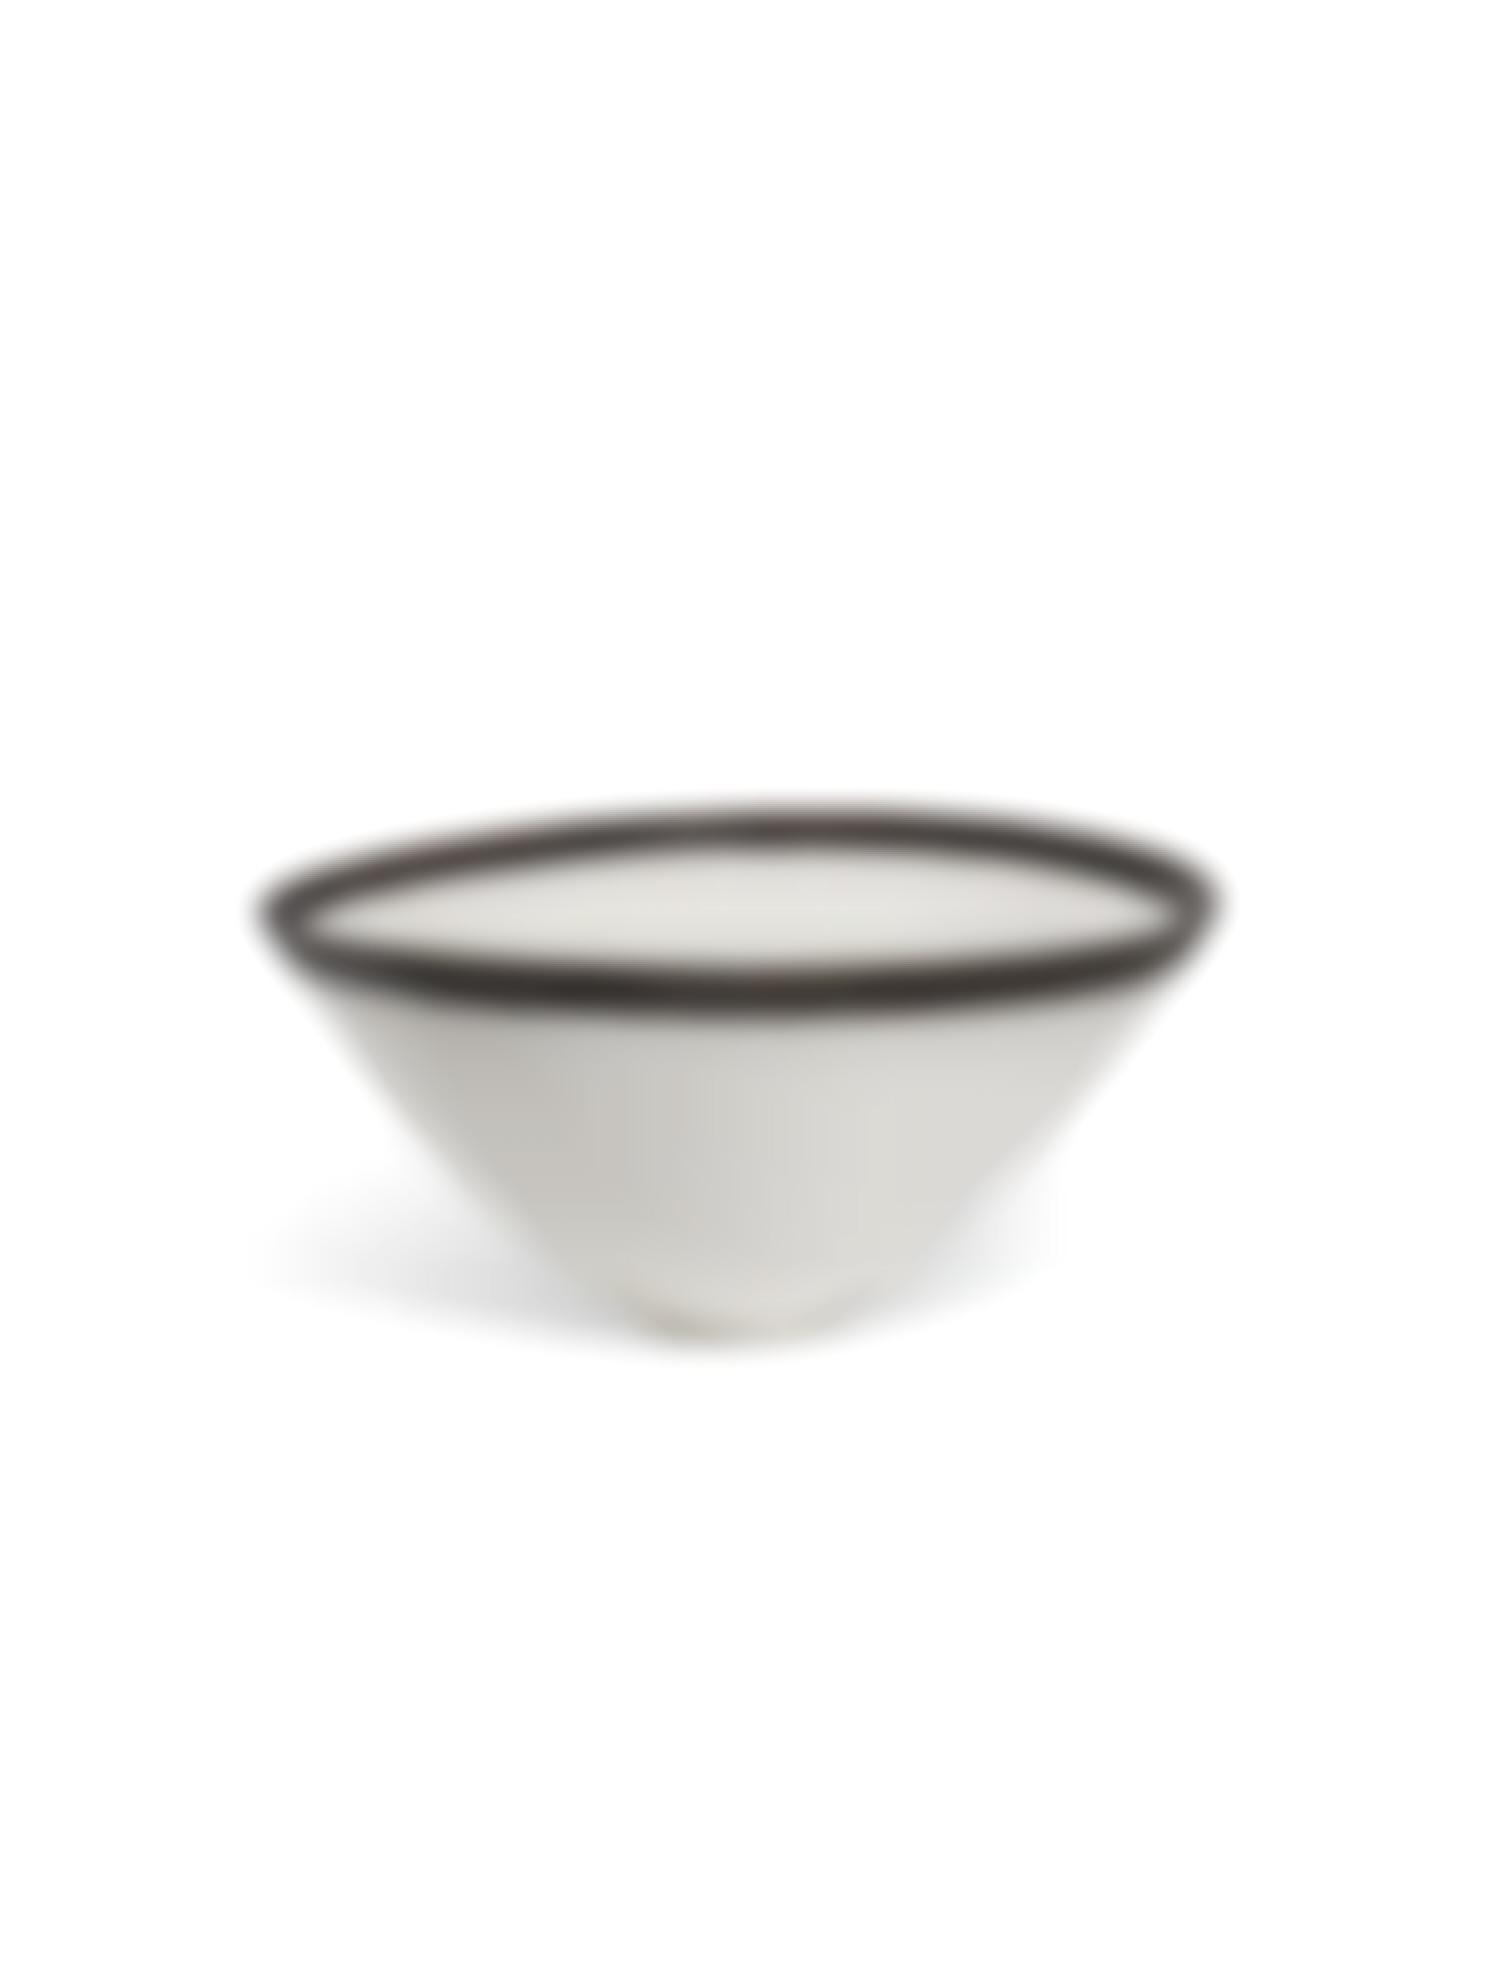 Dame Lucie Rie - Bowl-1964